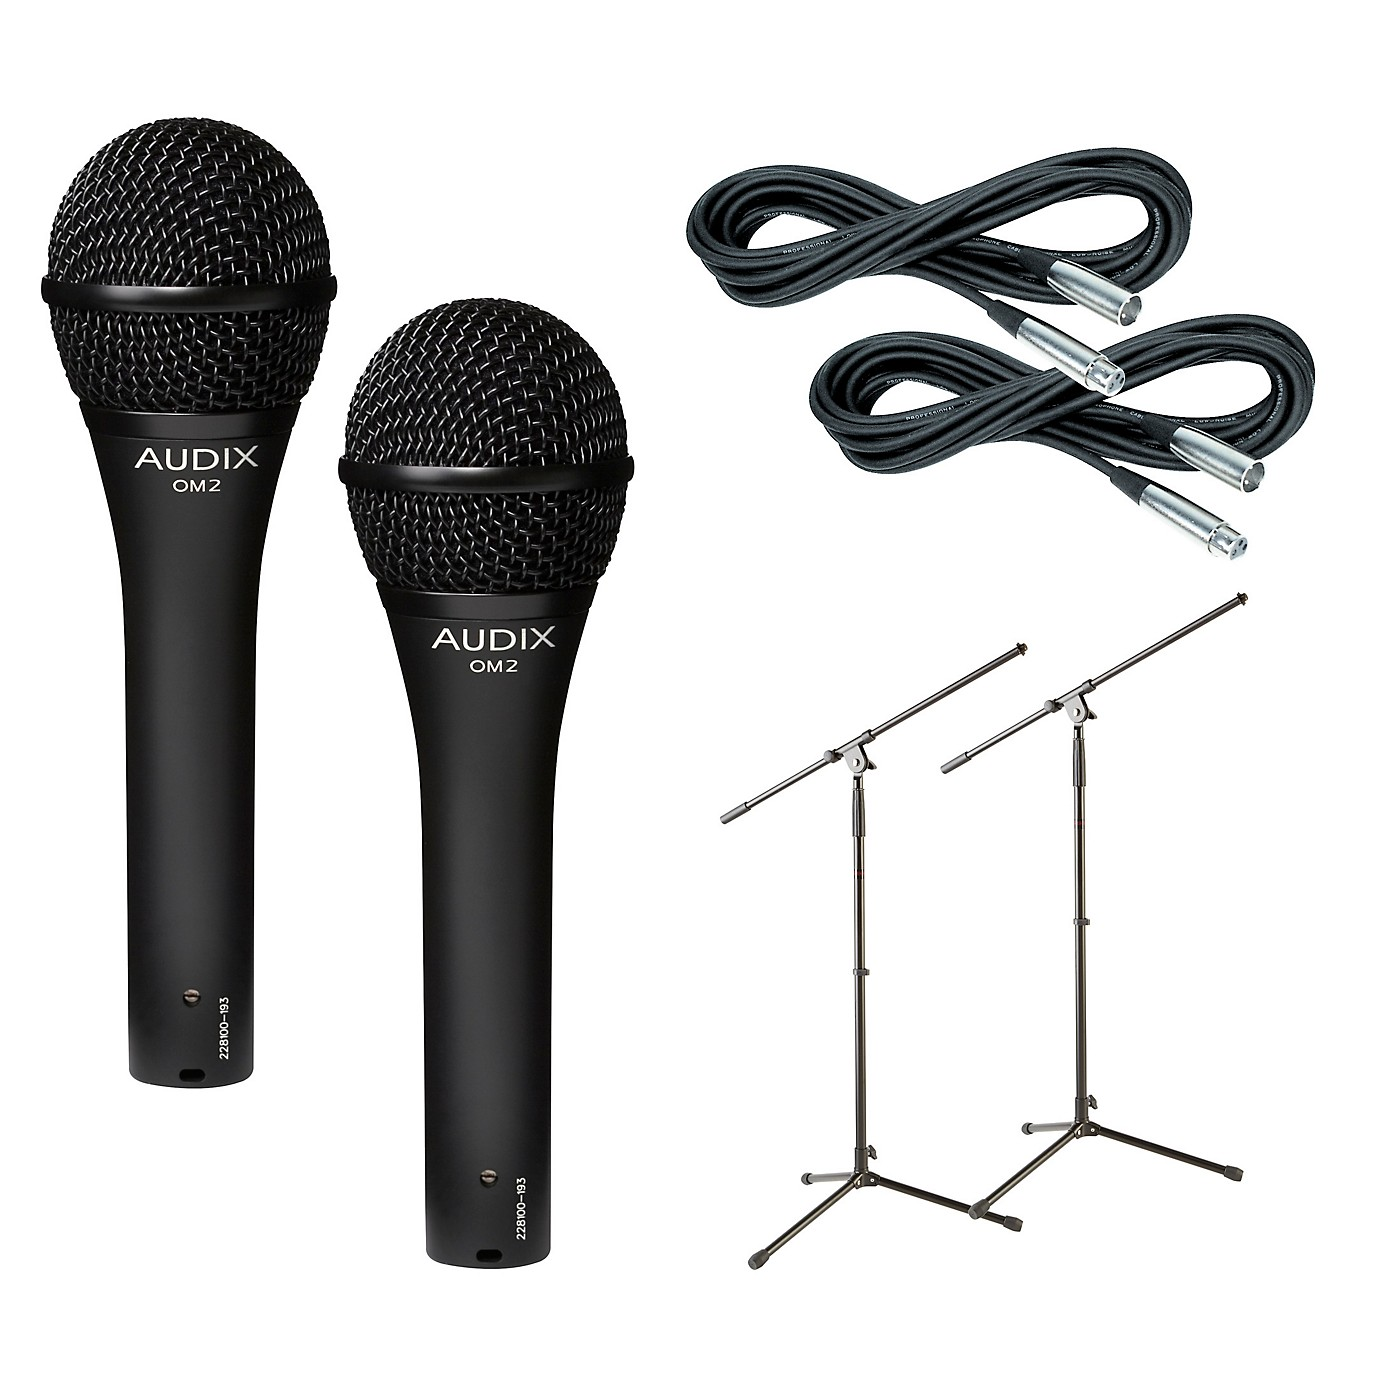 Audix OM-2 Mic with Cable and Stand 2 Pack thumbnail